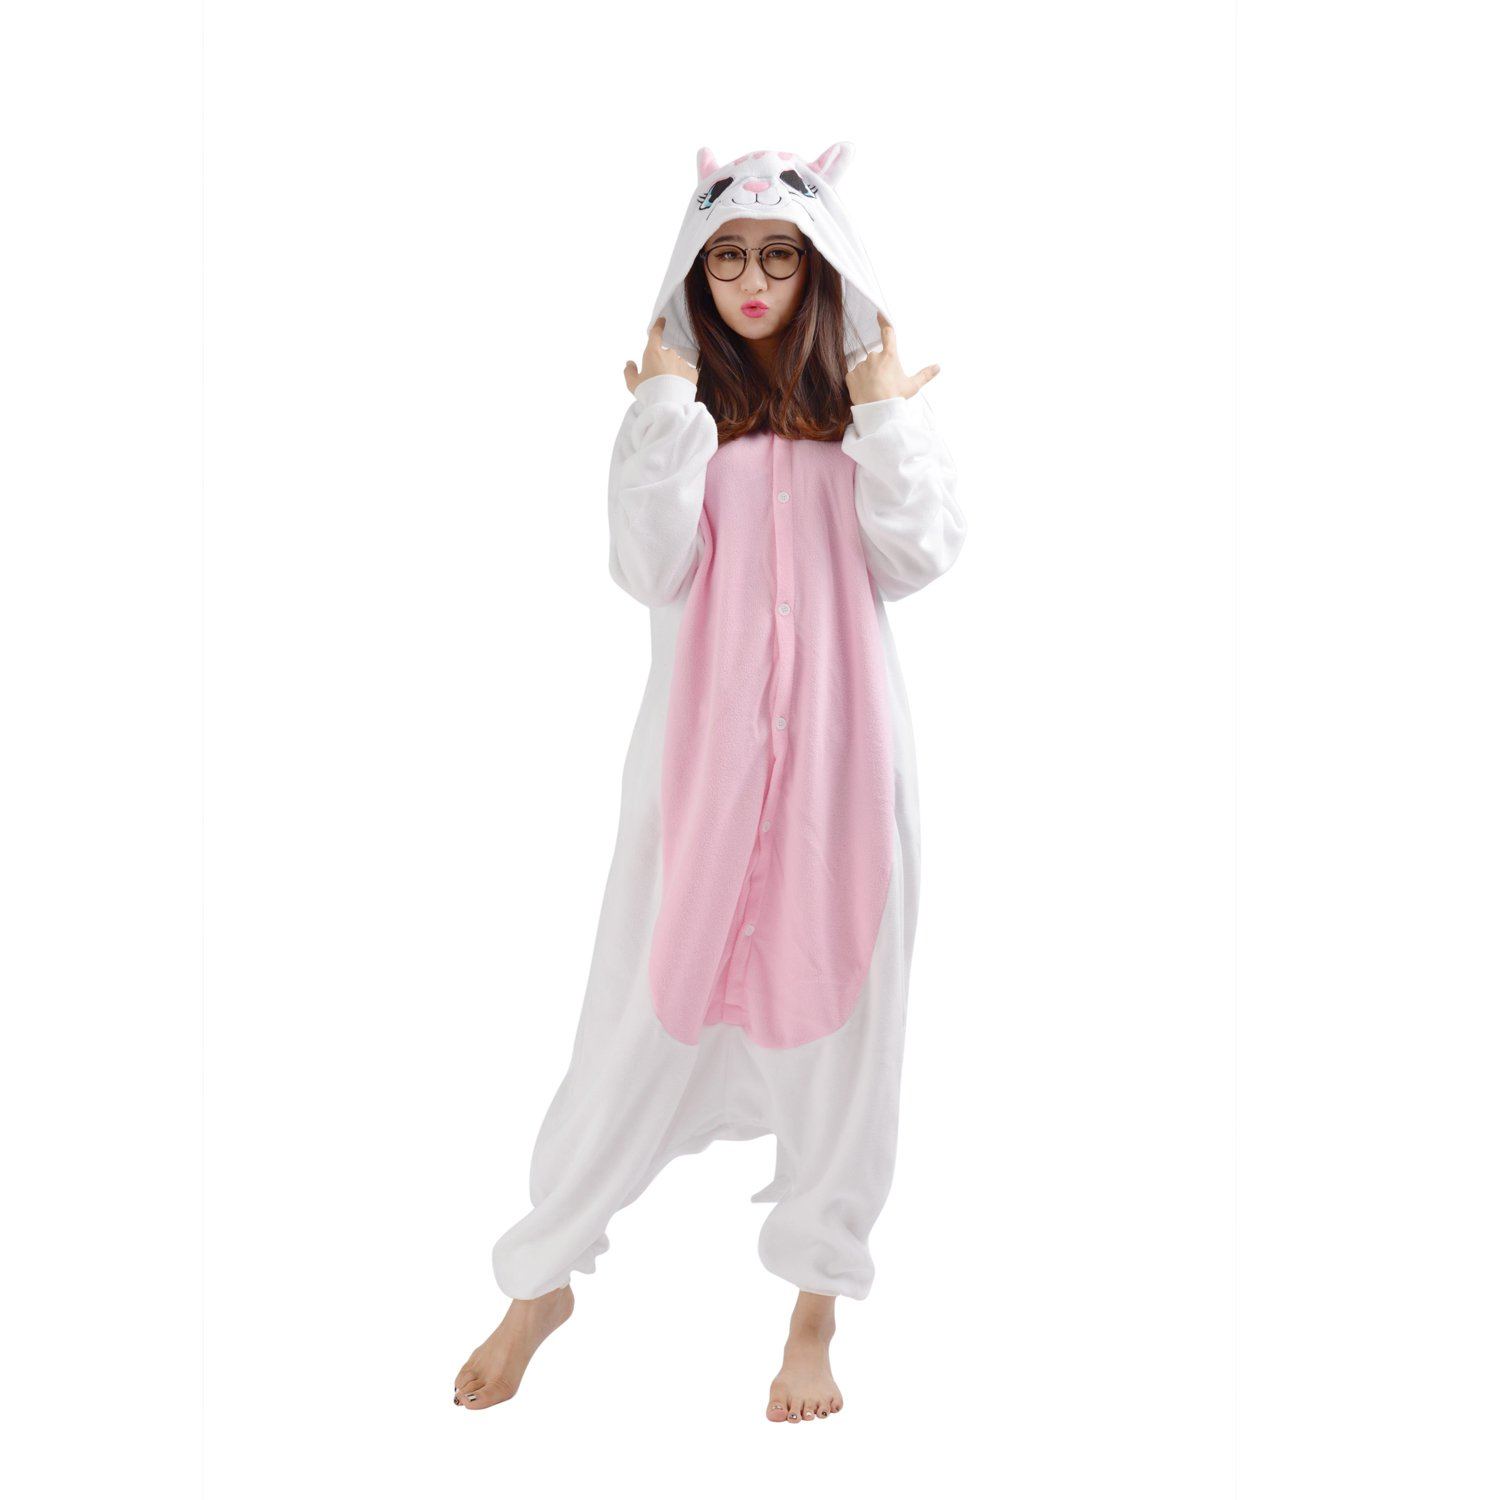 Cute On Adult Anime Sleepsuit Pajamas Costume Animal Onesie Cat Cosplay Size XL White